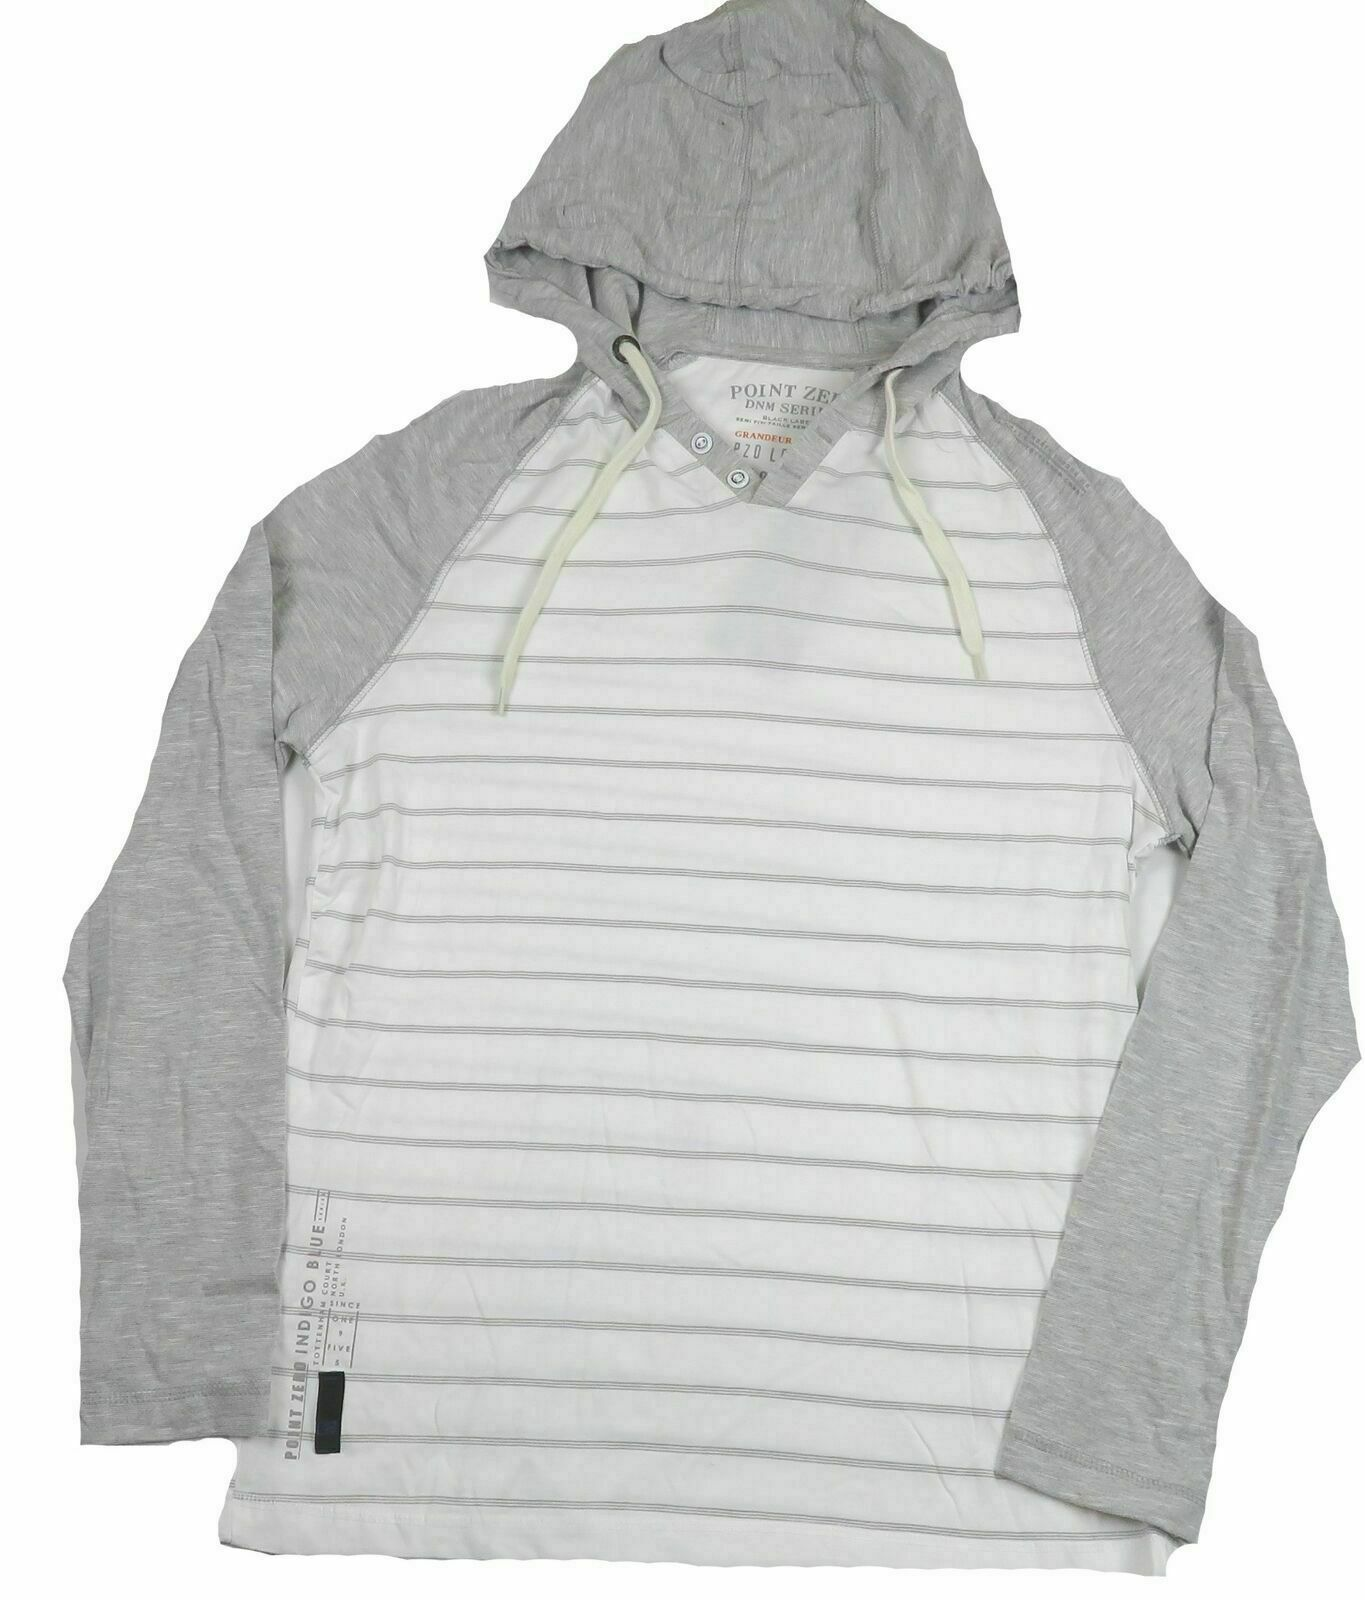 Small Men's Hooded Tee Shirt Long Sleeve Point Zero DNM Series WateRecycle